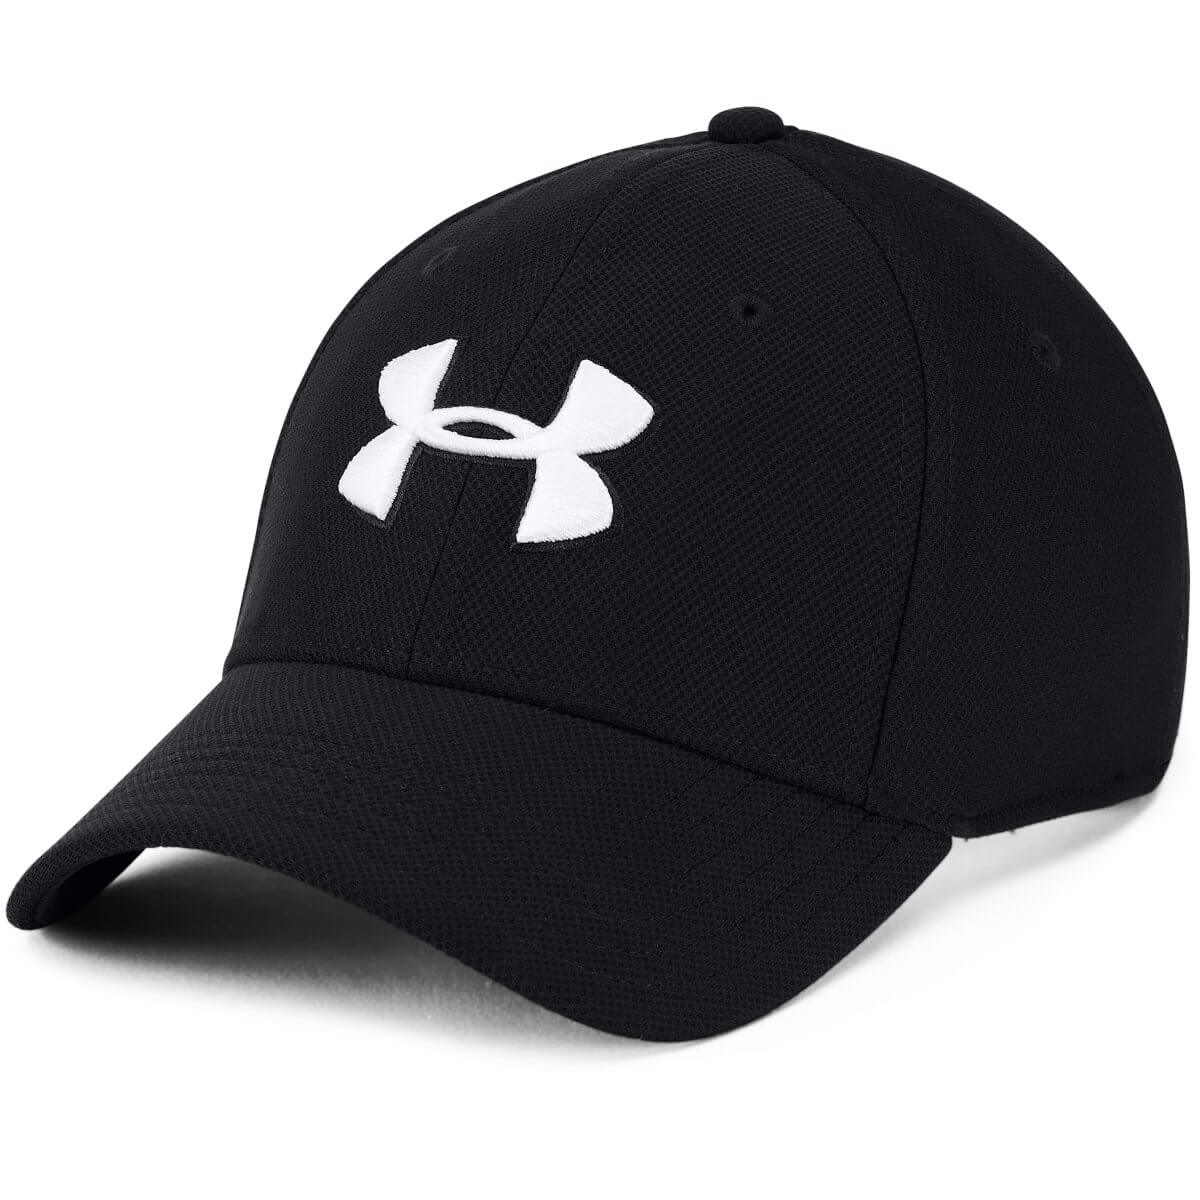 Under Armour Šiltovka Men's Blitzing 3.0 Cap BlackWhite SM